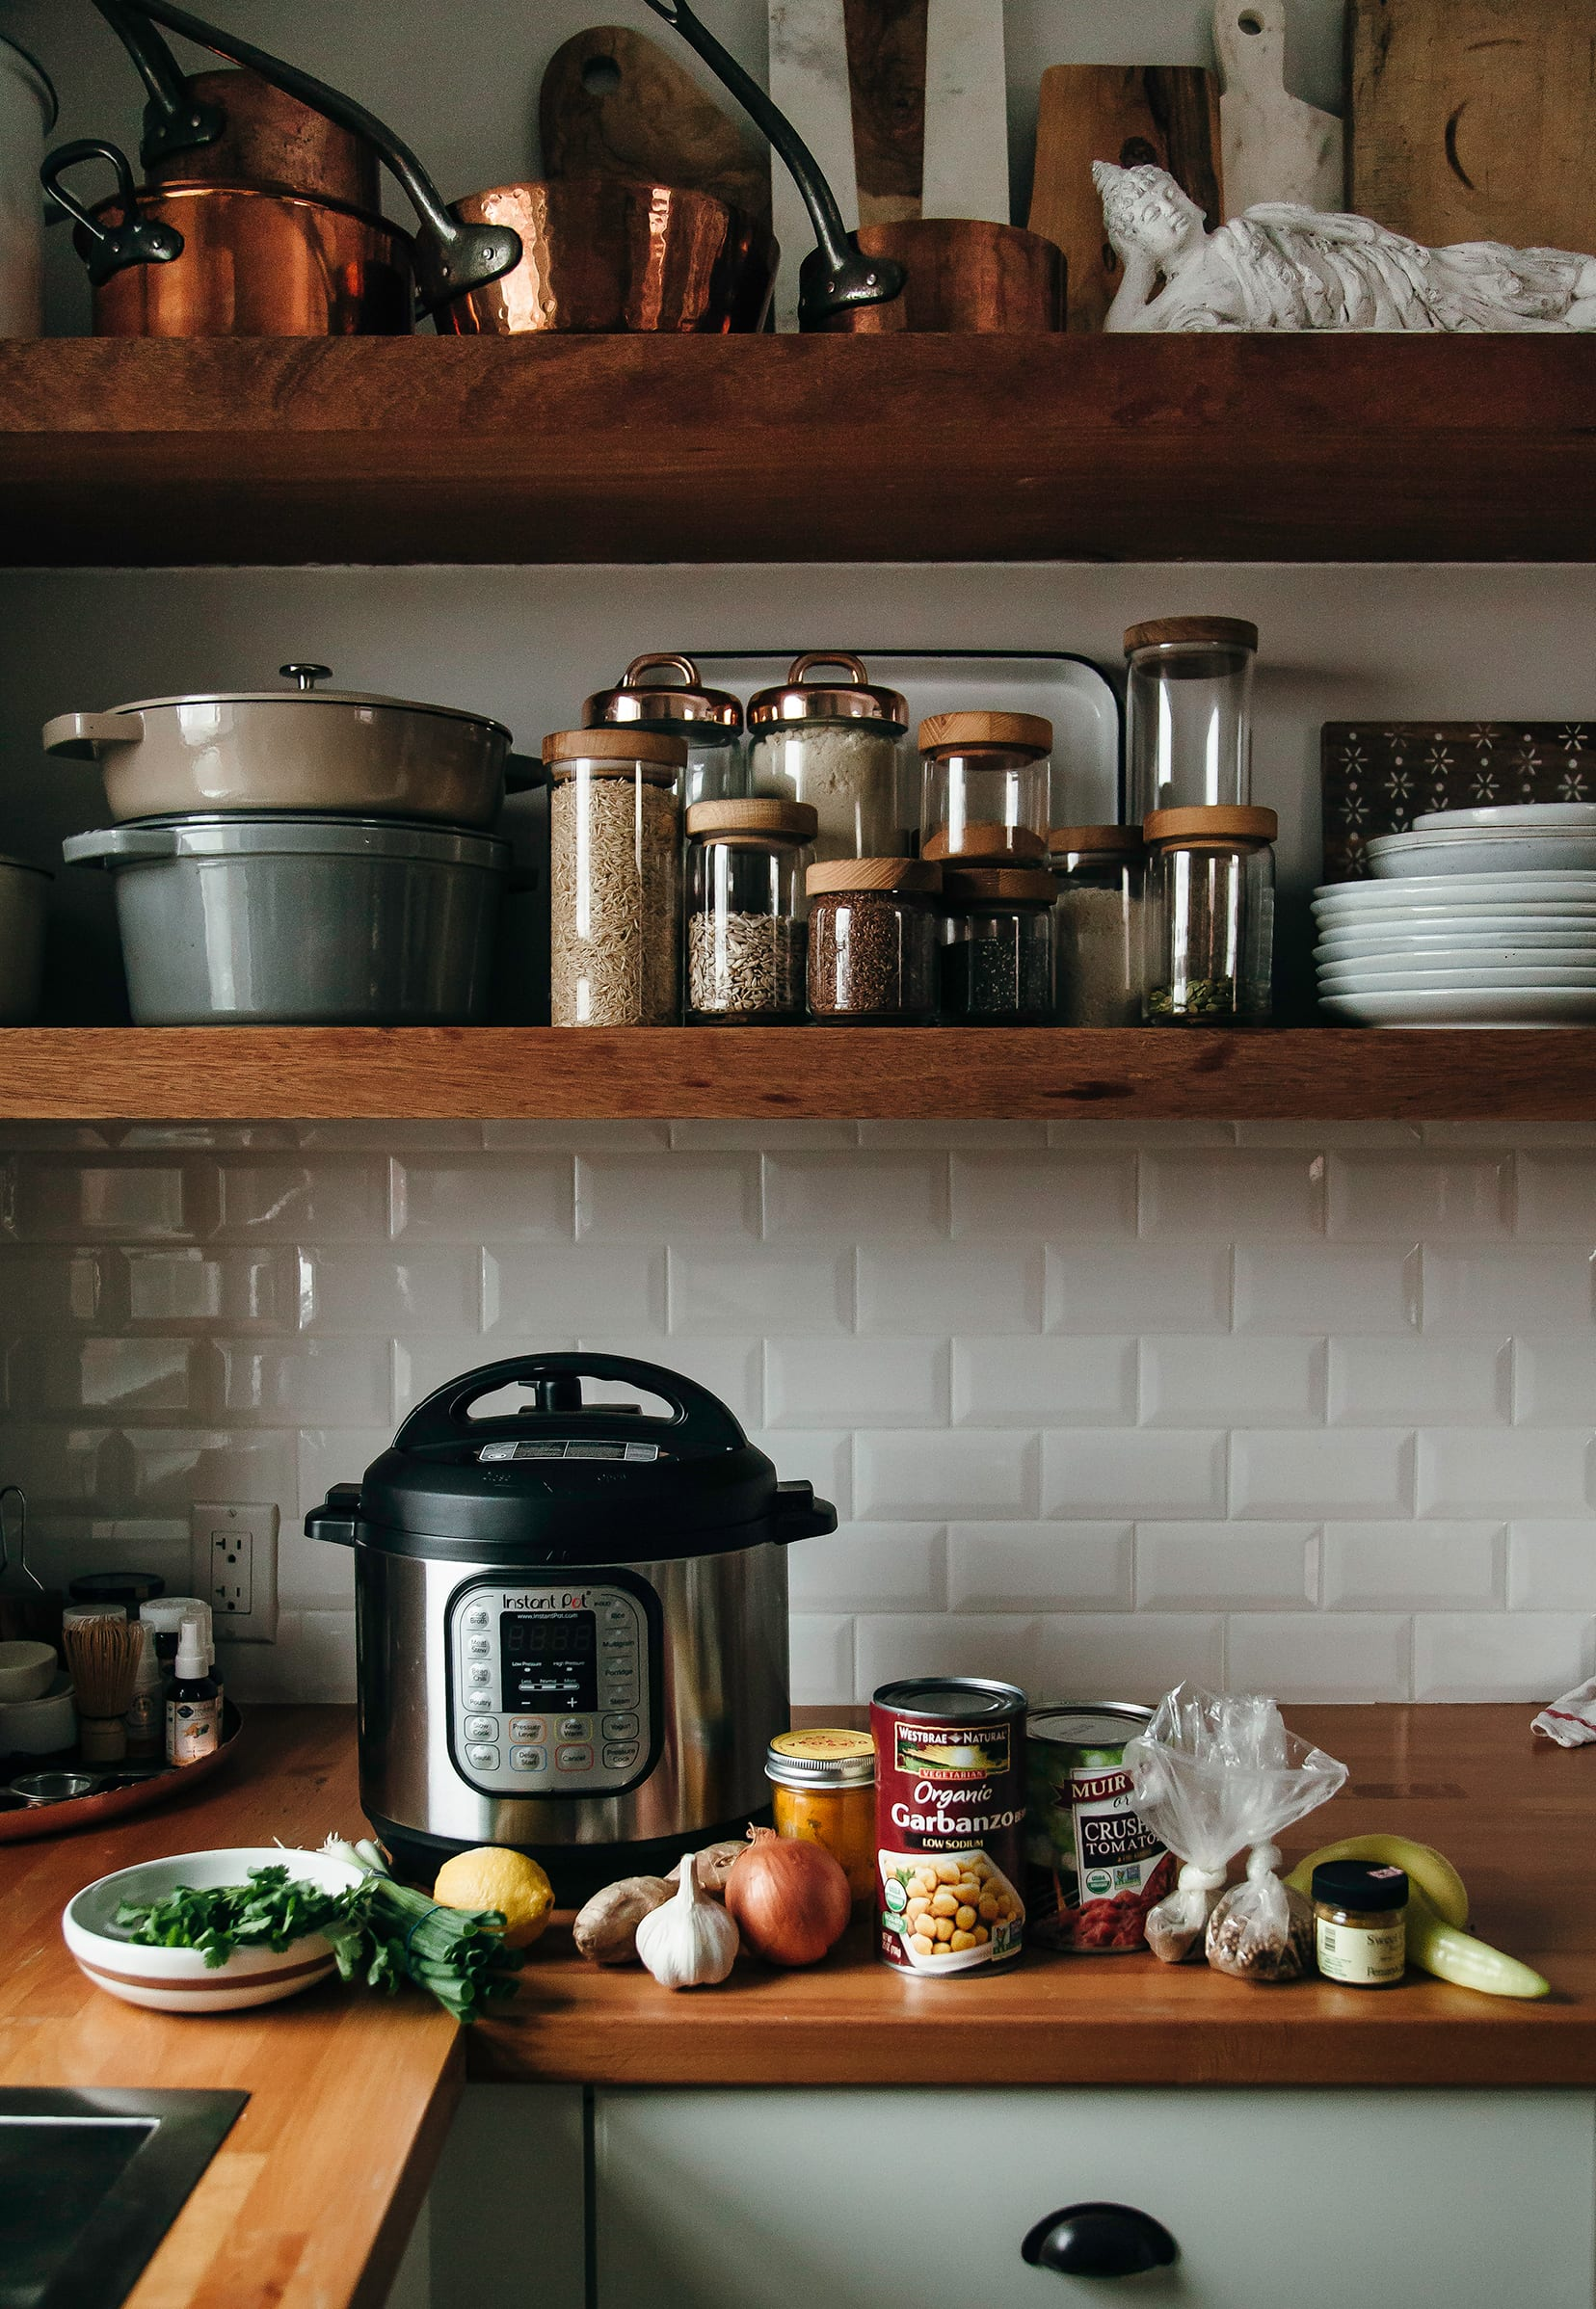 Image shows a kitchen scene with soup ingredients on the counter along with an Instant pot.